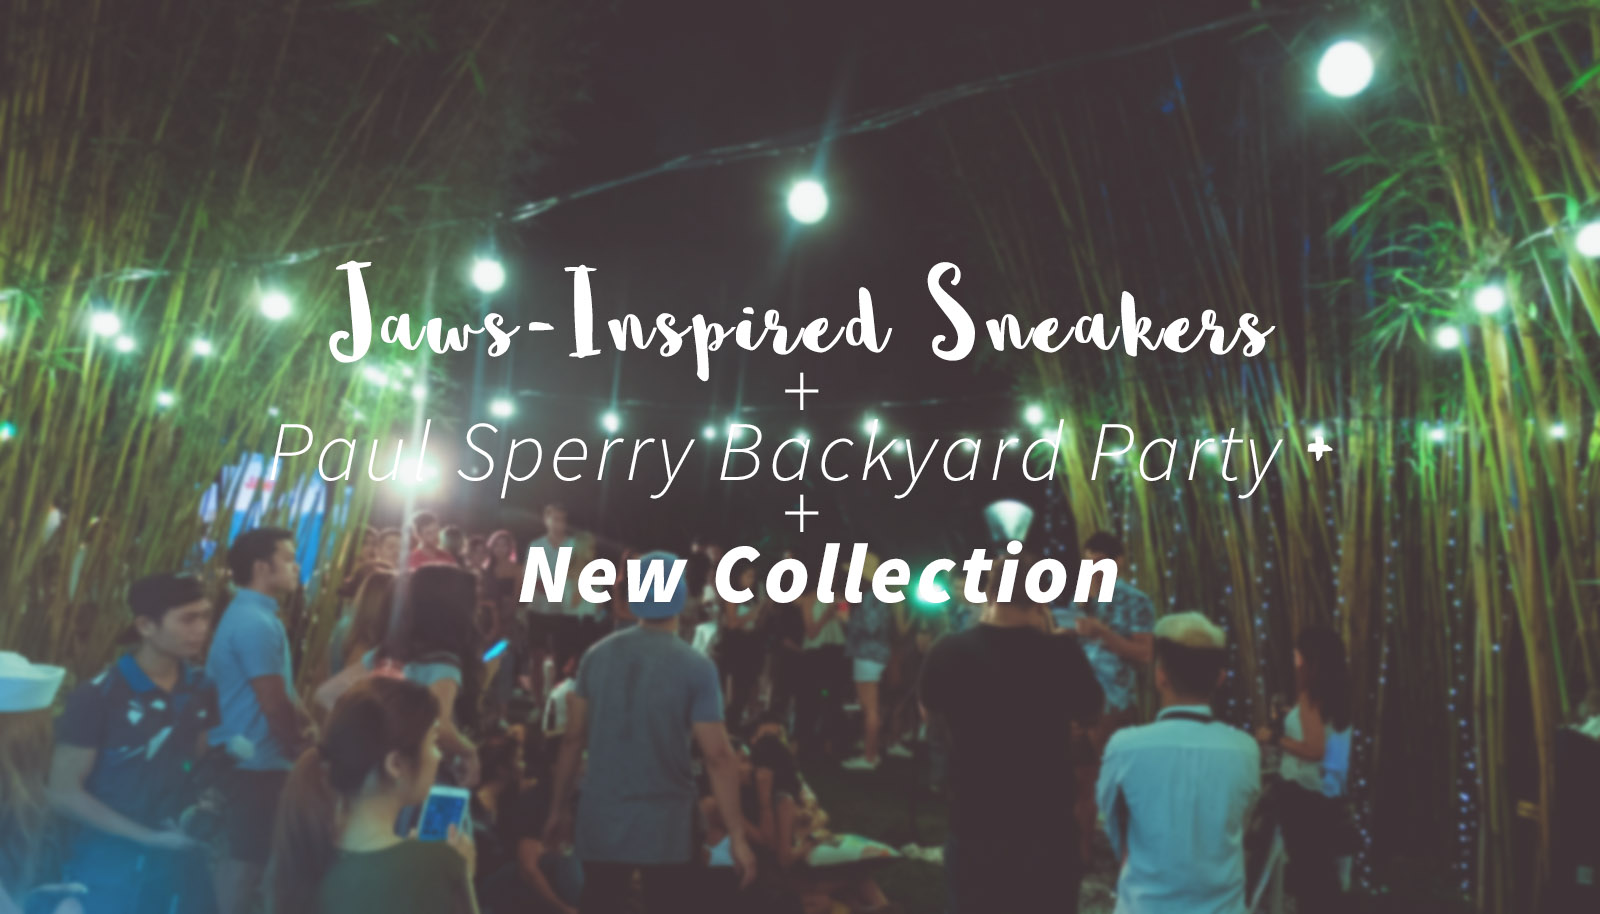 jaws inspired sneakers paul sperry backyard party